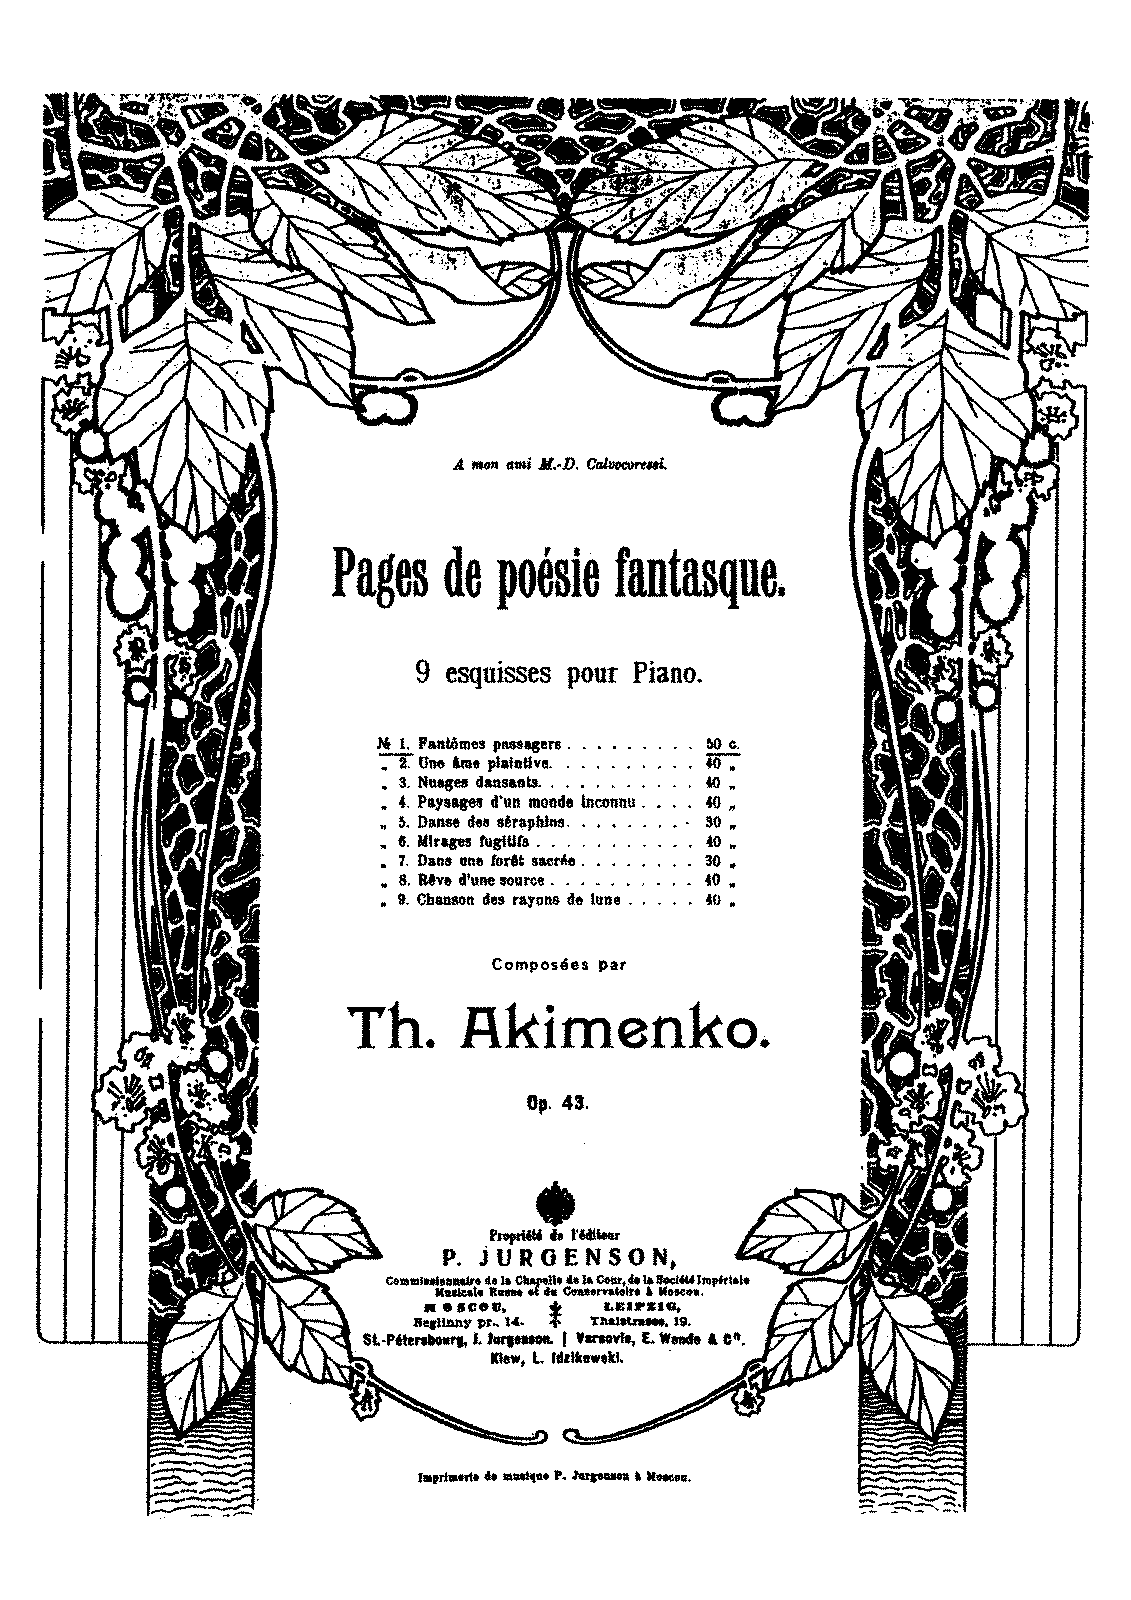 PMLP353500-Akimenko - 43 Pages de poesie fantasque op 43 - 9 Esquisses.pdf